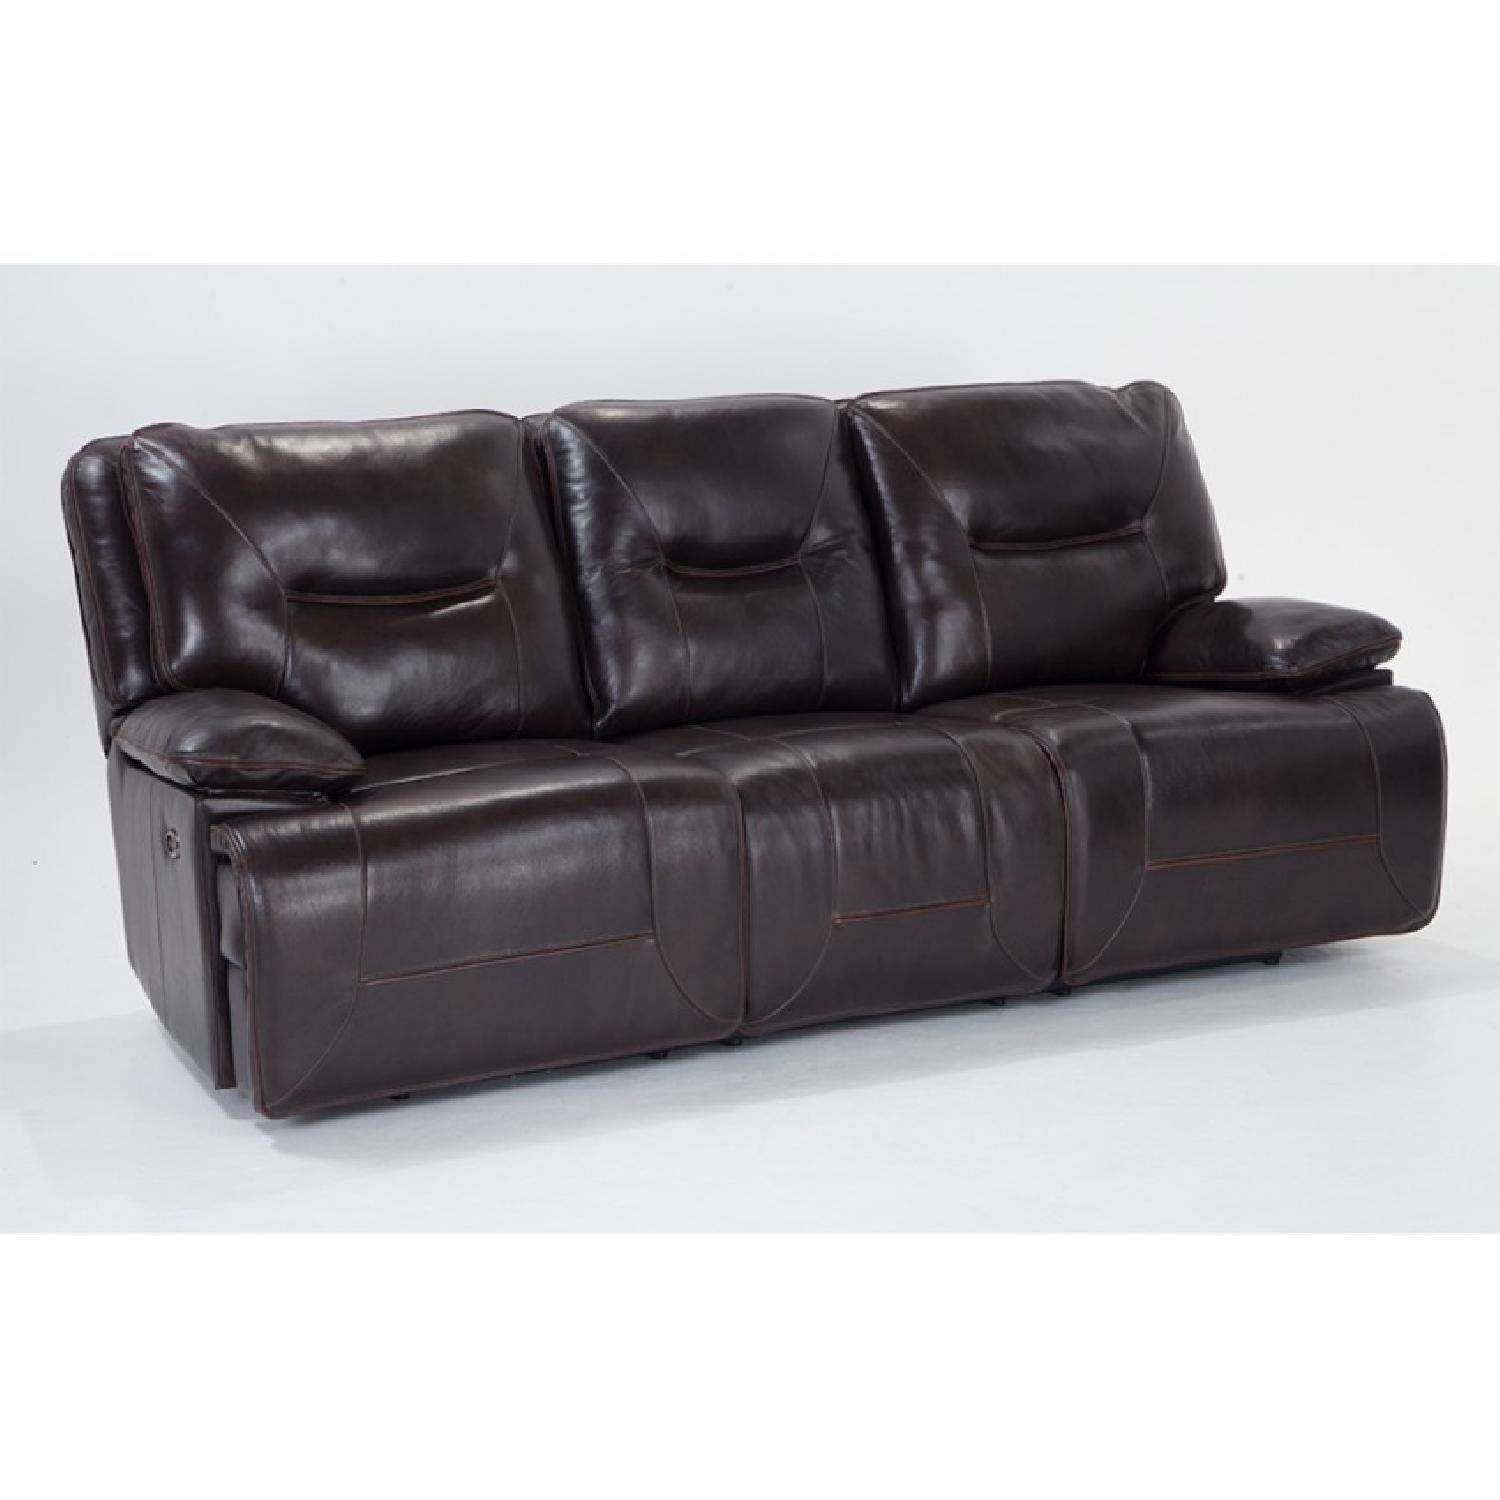 Bobu0027s Brown Leather Recliner Sofa w/ USB Ports u0026 Console ...  sc 1 st  AptDeco & Bobu0027s Brown Leather Recliner Sofa w/ USB Ports u0026 - AptDeco islam-shia.org